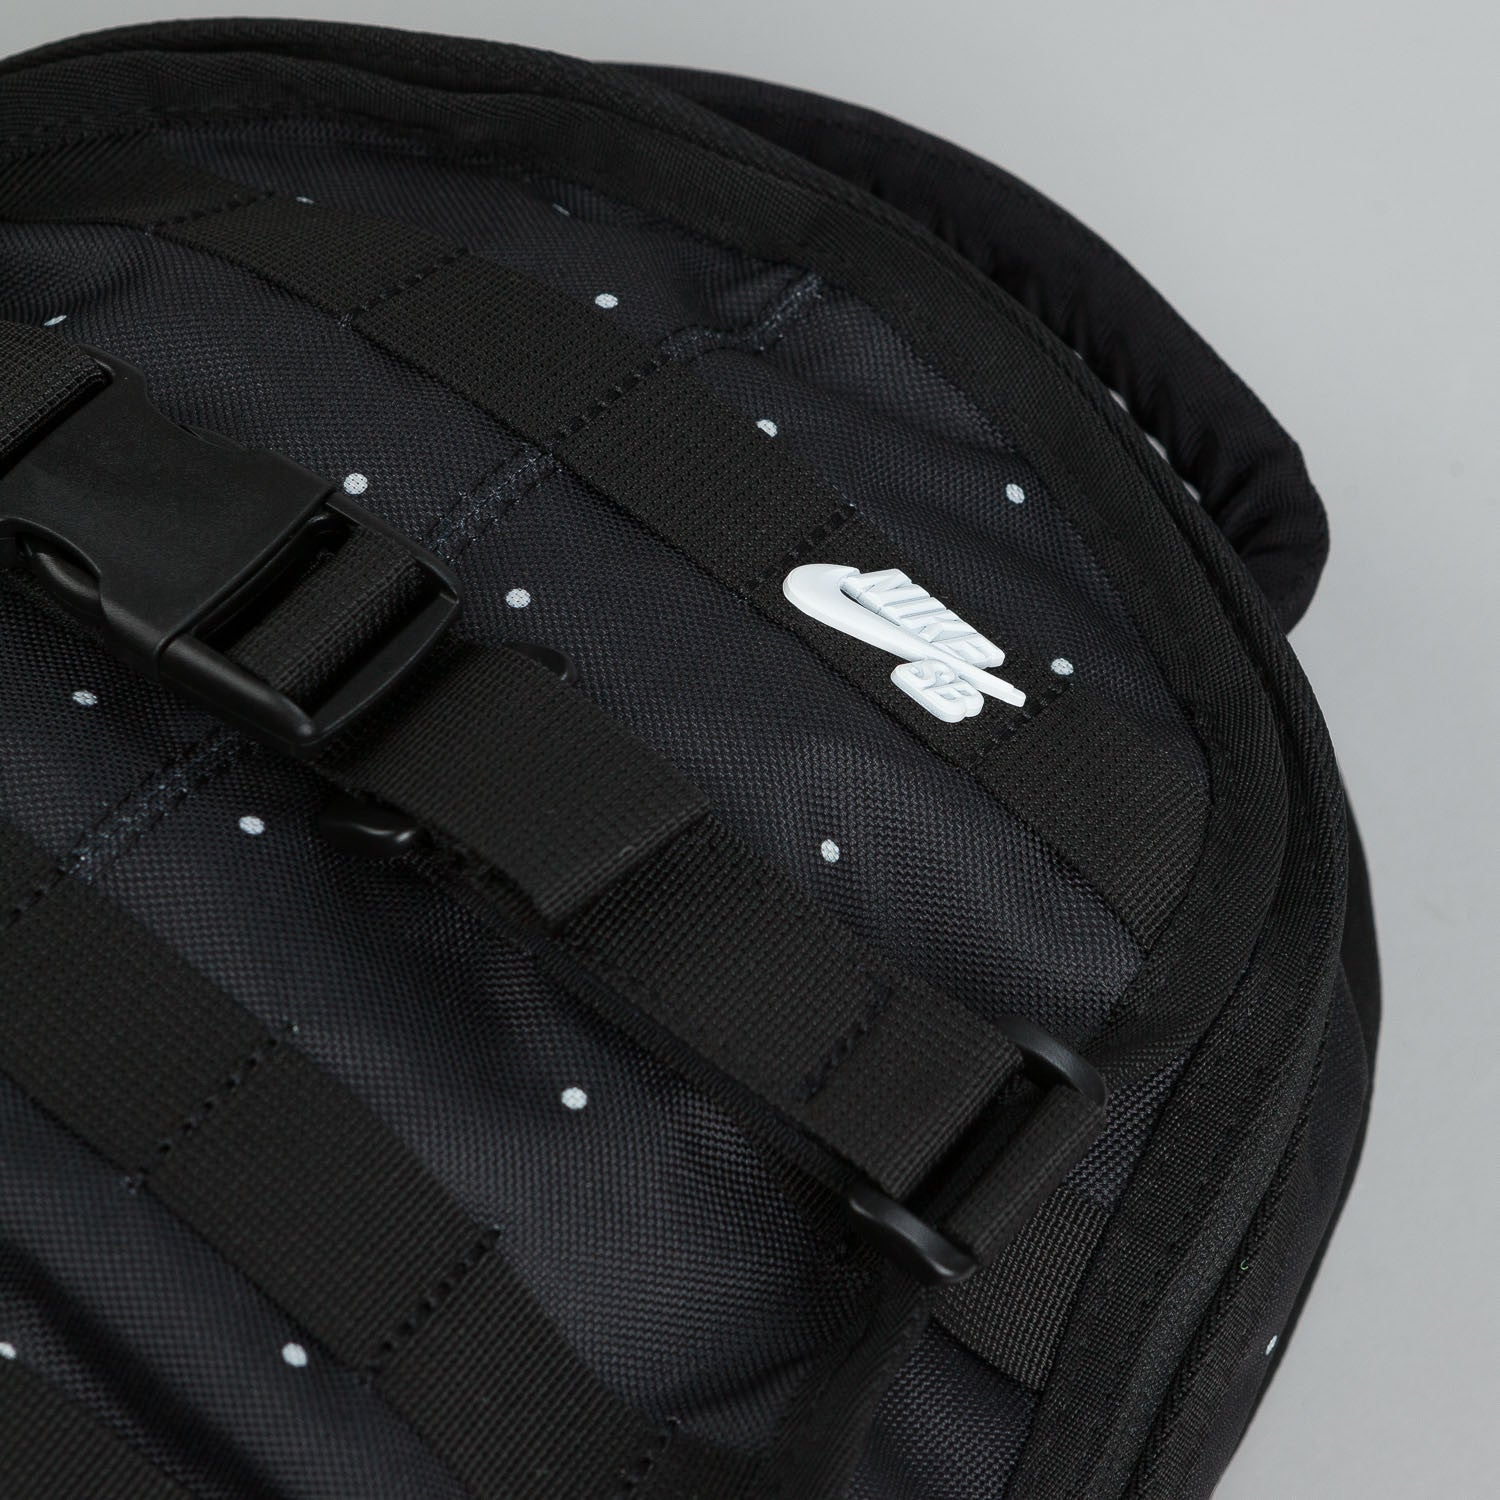 Nike SB RPM Backpack - Black / White